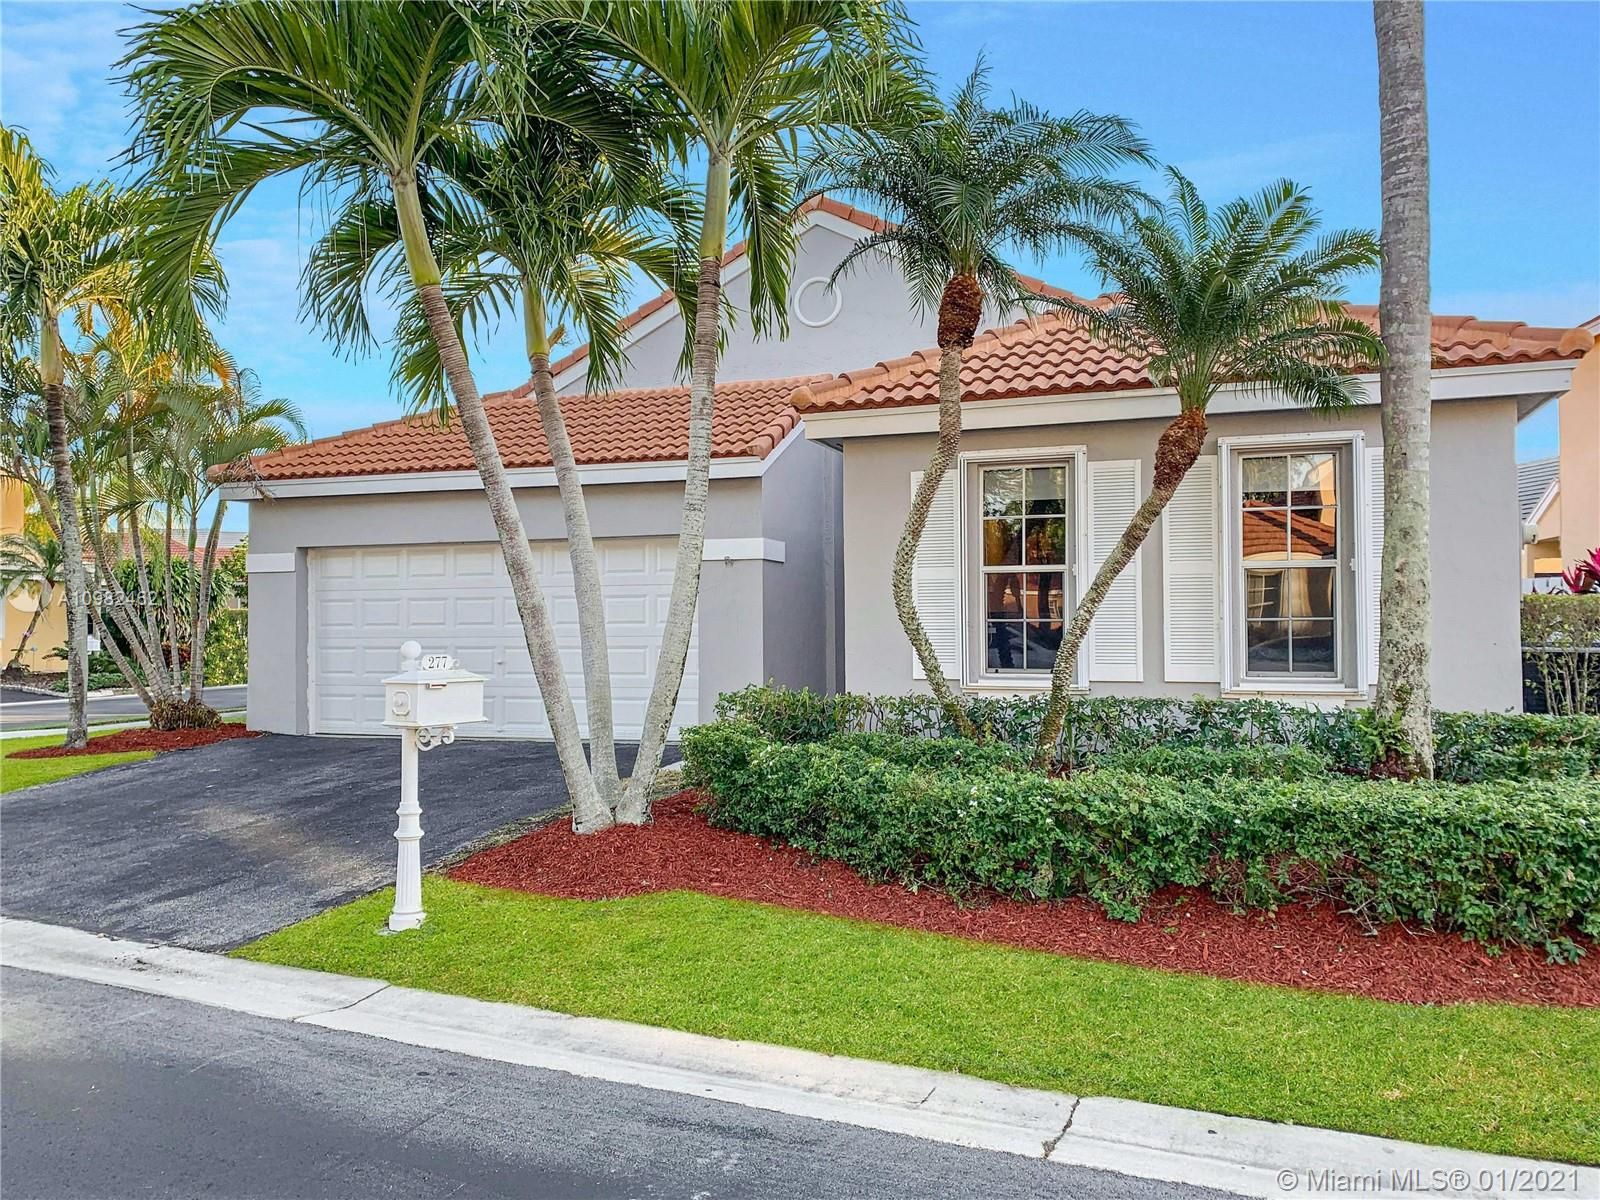 Weston - 277 Bridgeton Way, Weston, FL 33326